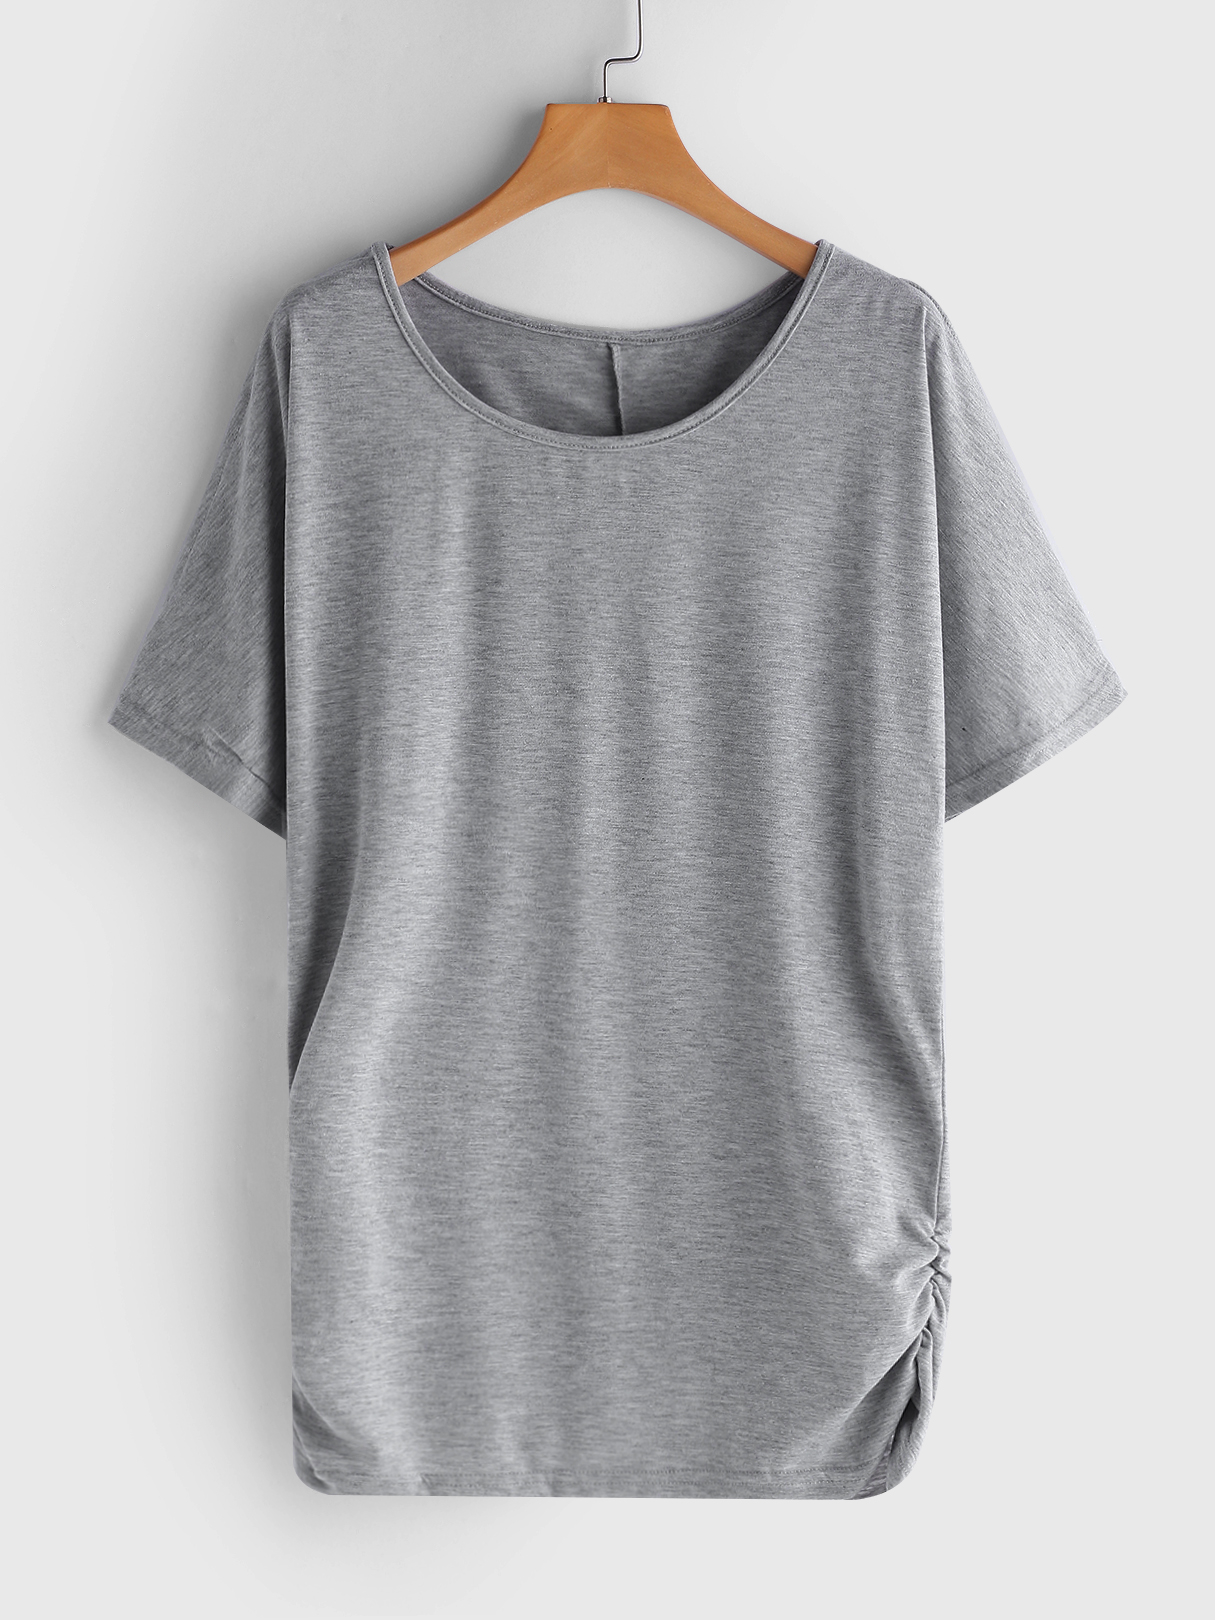 Grey Pleated Design Round Neck Bat Sleeves T-shirts black pleated design round neck bat sleeves t shirts